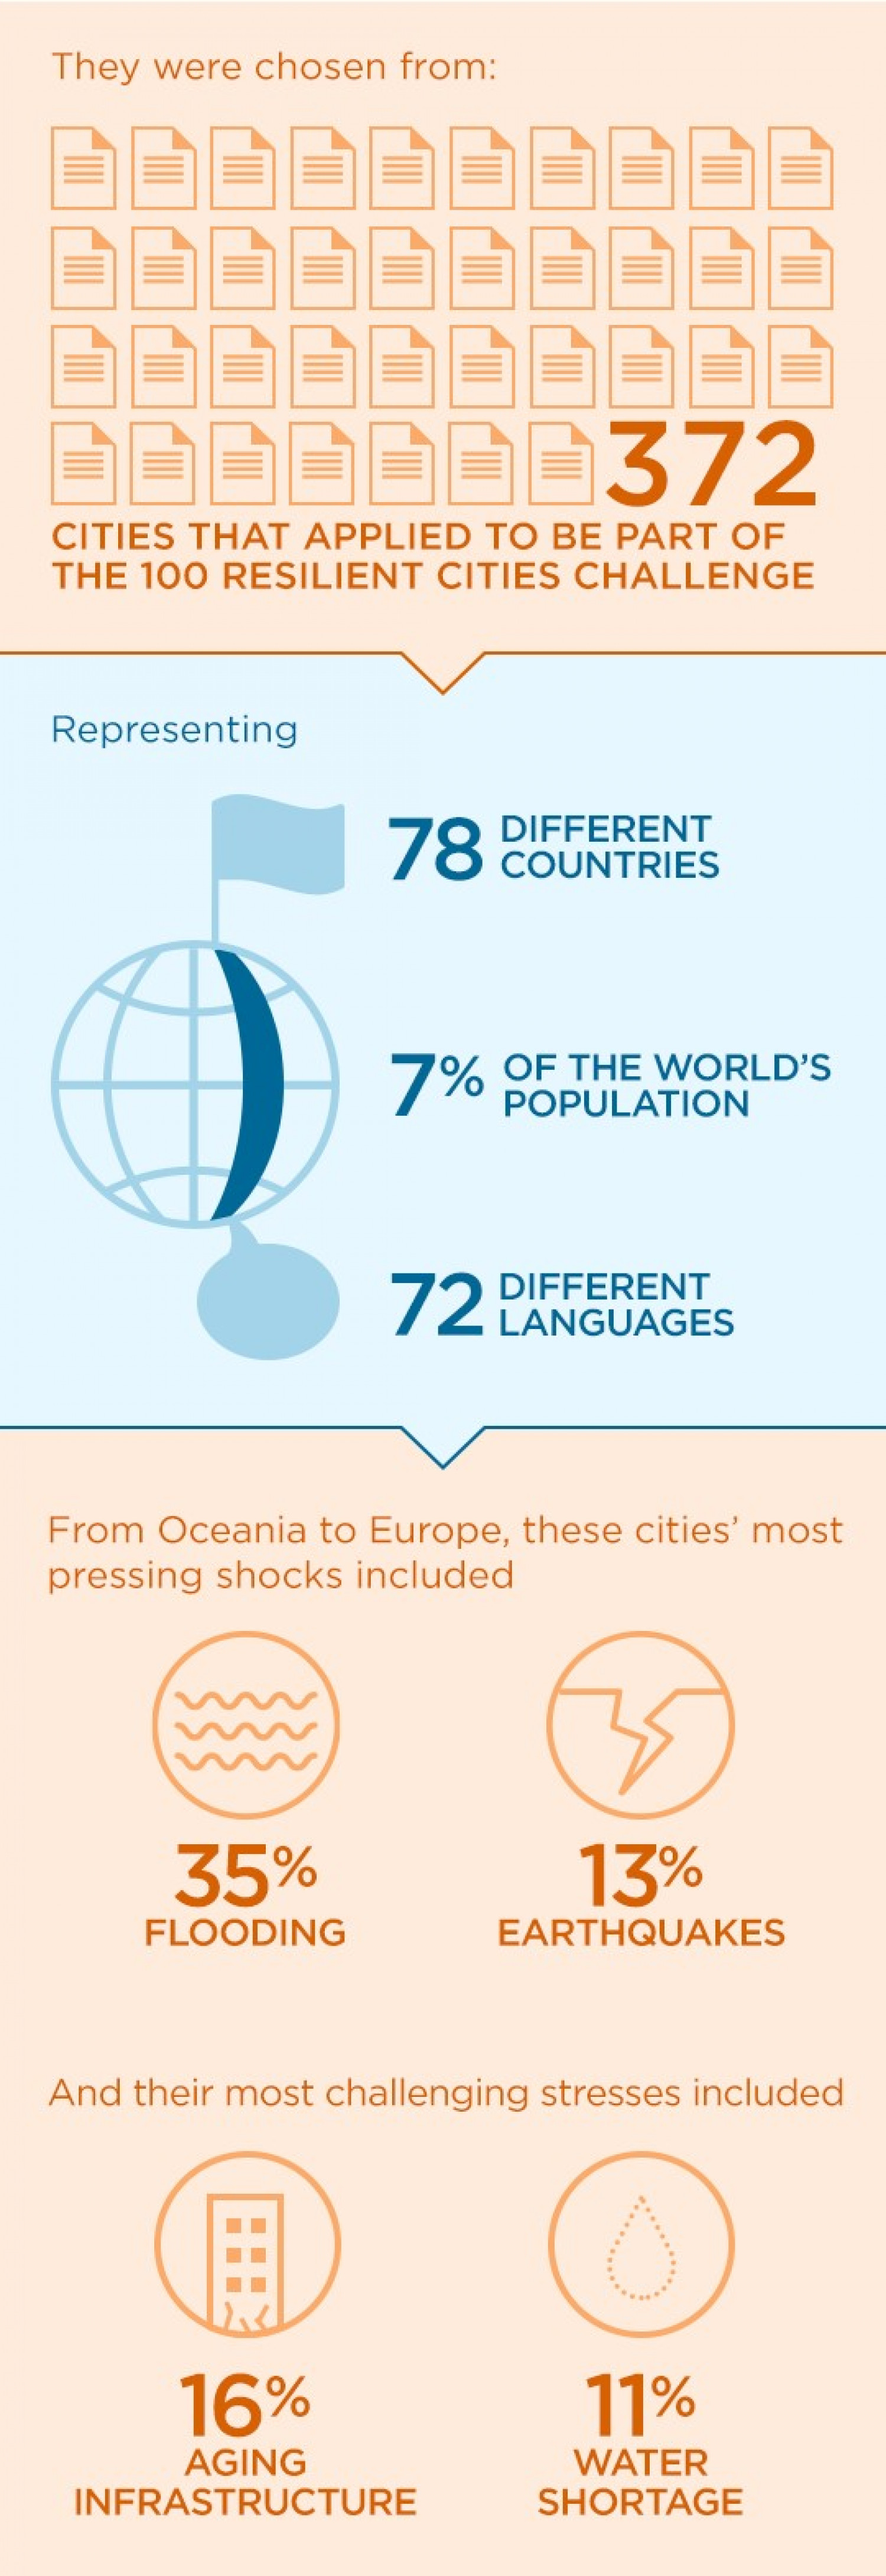 100 Resilient Cities Application Statistics Infographic